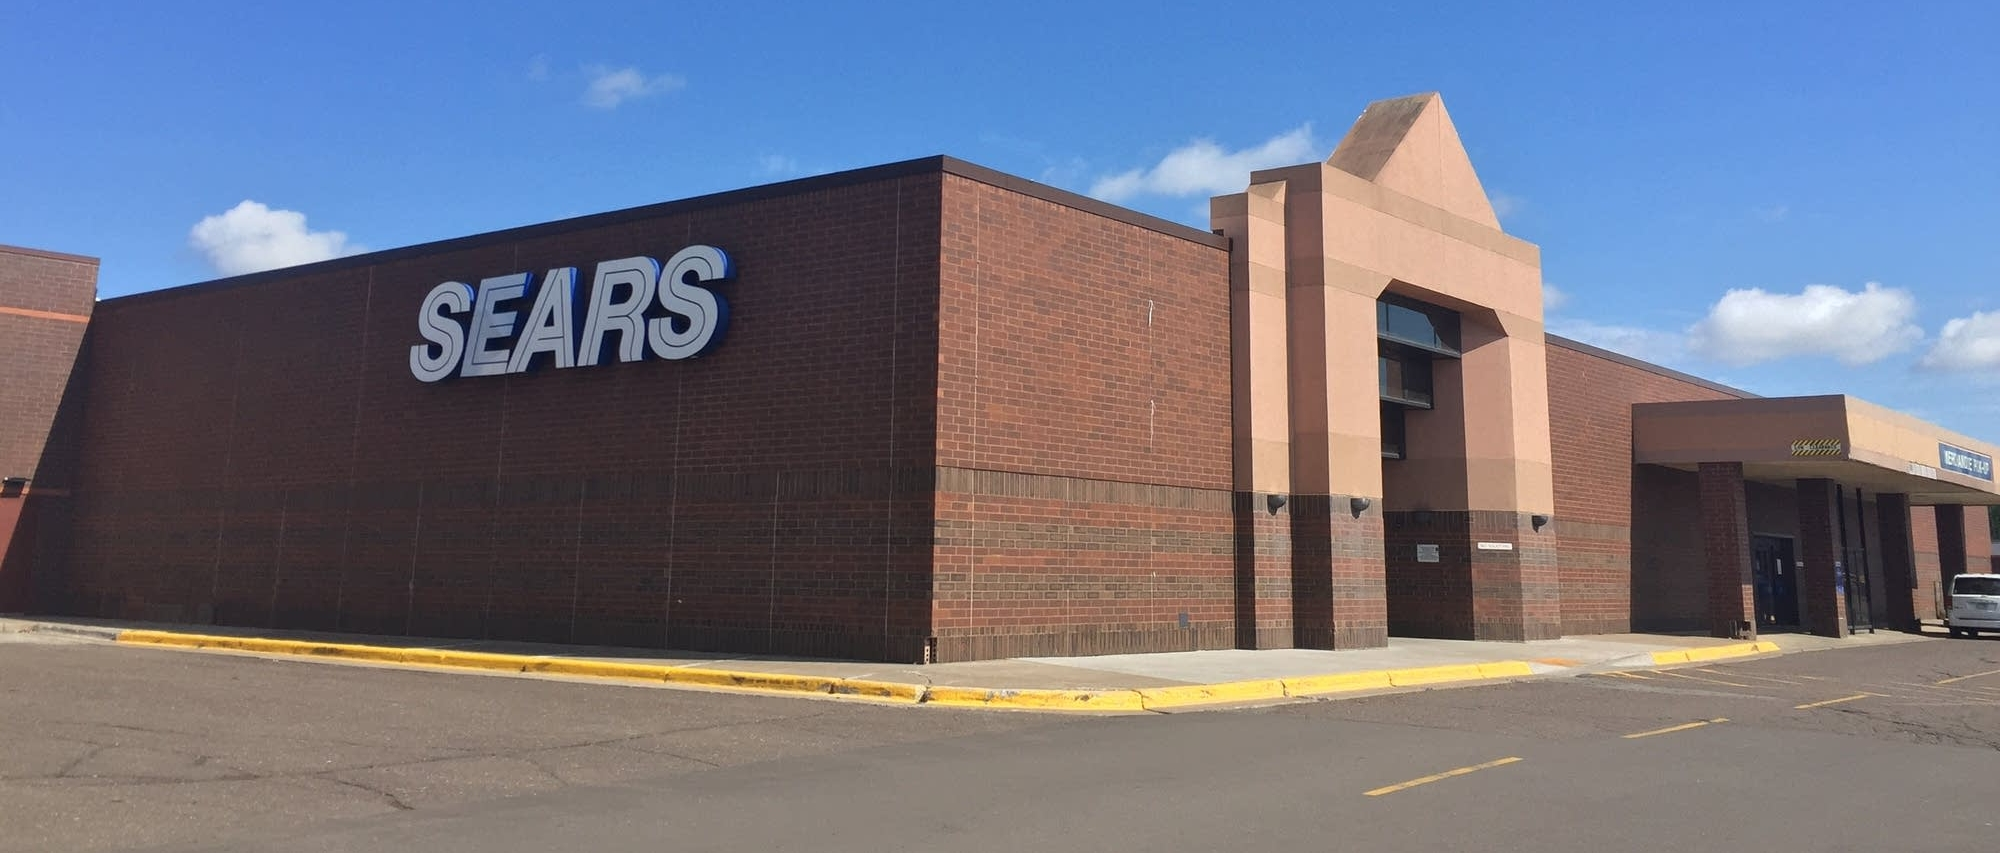 Sears at the Miller Mall Mall |  MPR News